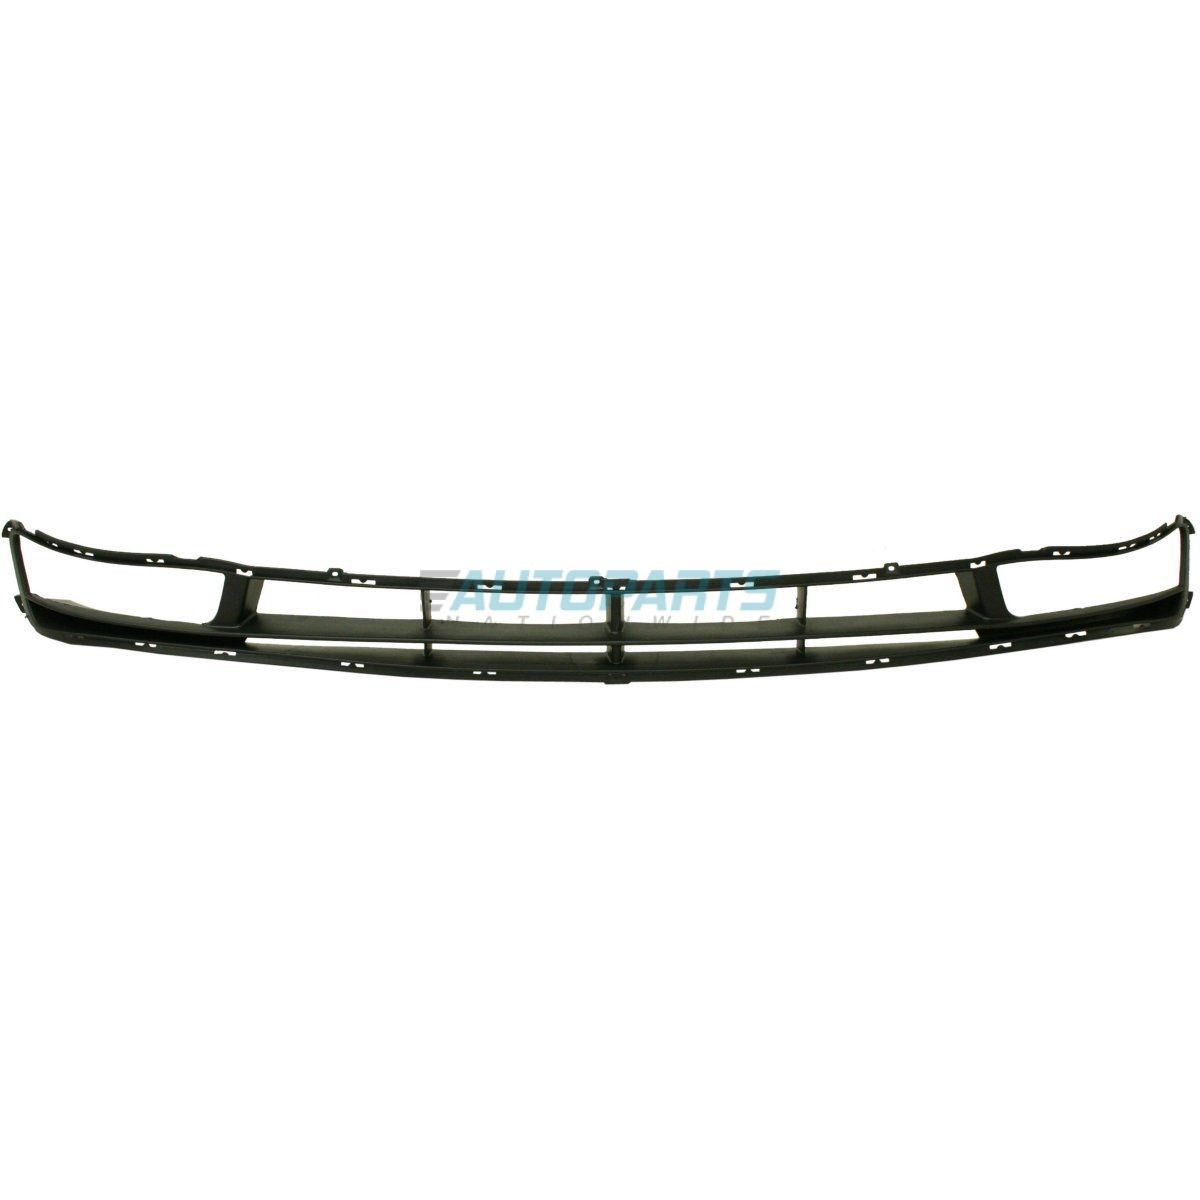 NEW FRONT BUMPER GRILLE W/ FOG LIGHT HOLE FITS 2006-11